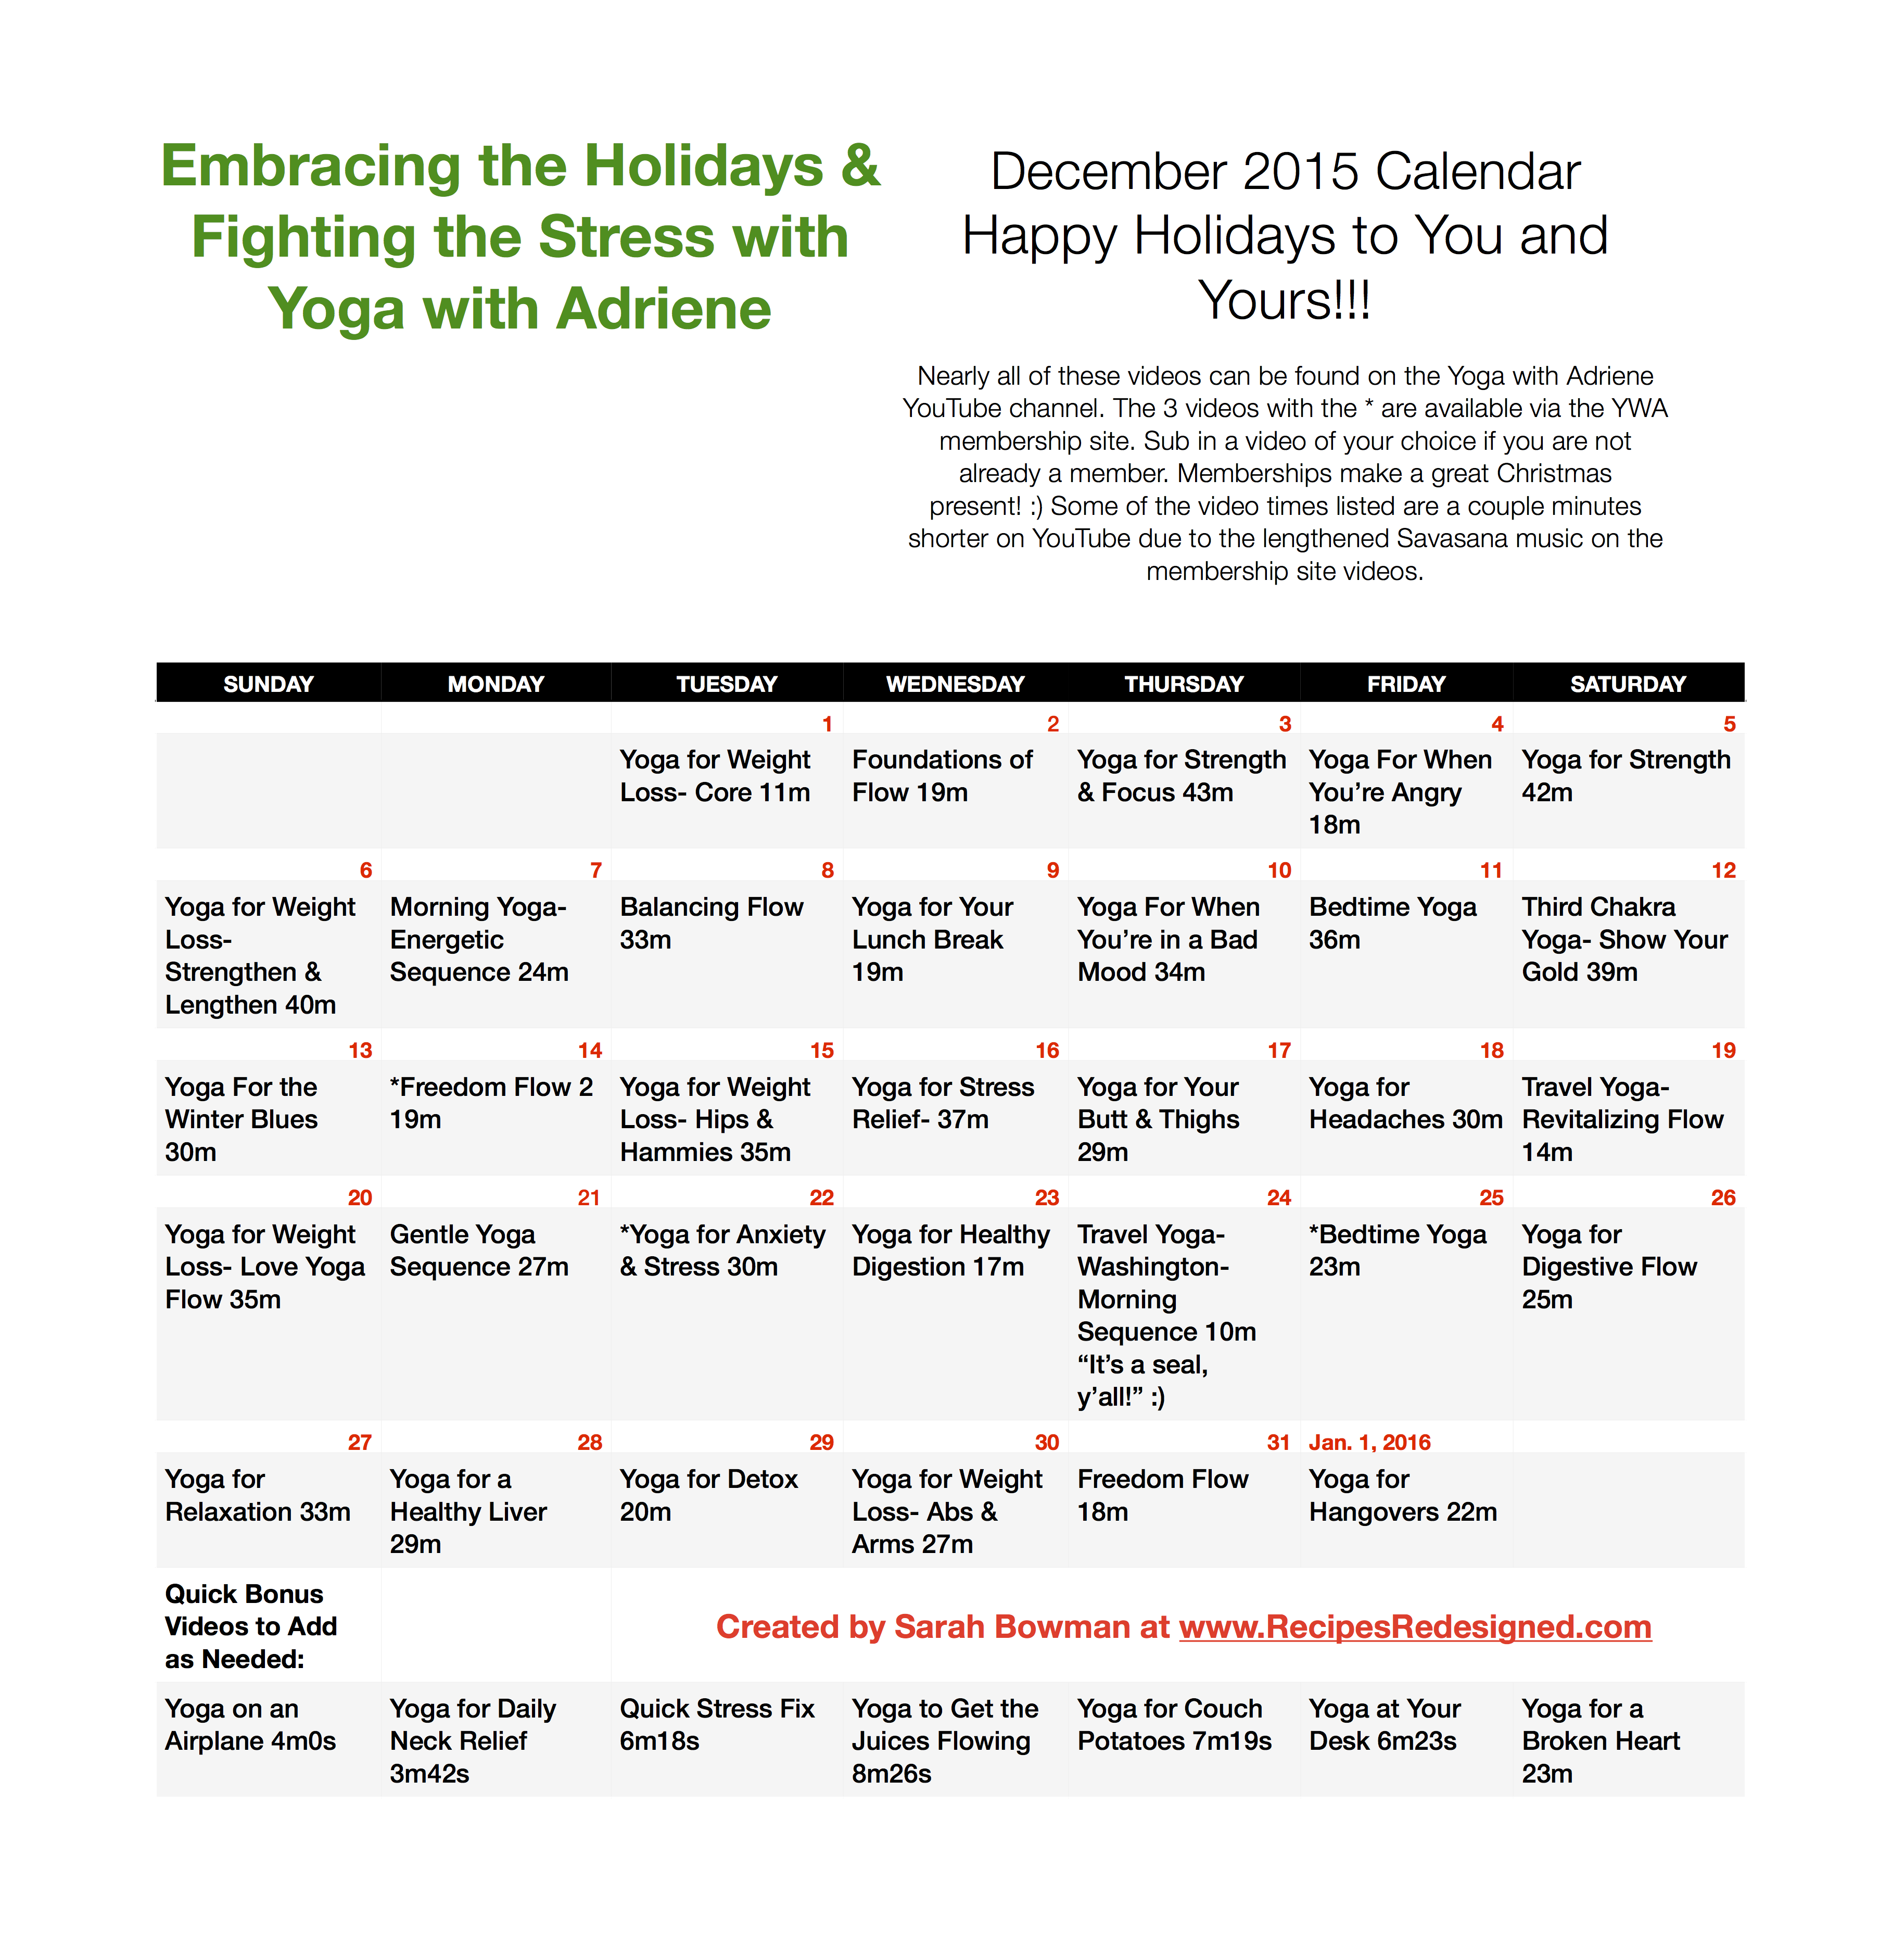 Yoga With Adriene December Calendar 2019 Embracing the Holidays & Fighting the Stress with Yoga with